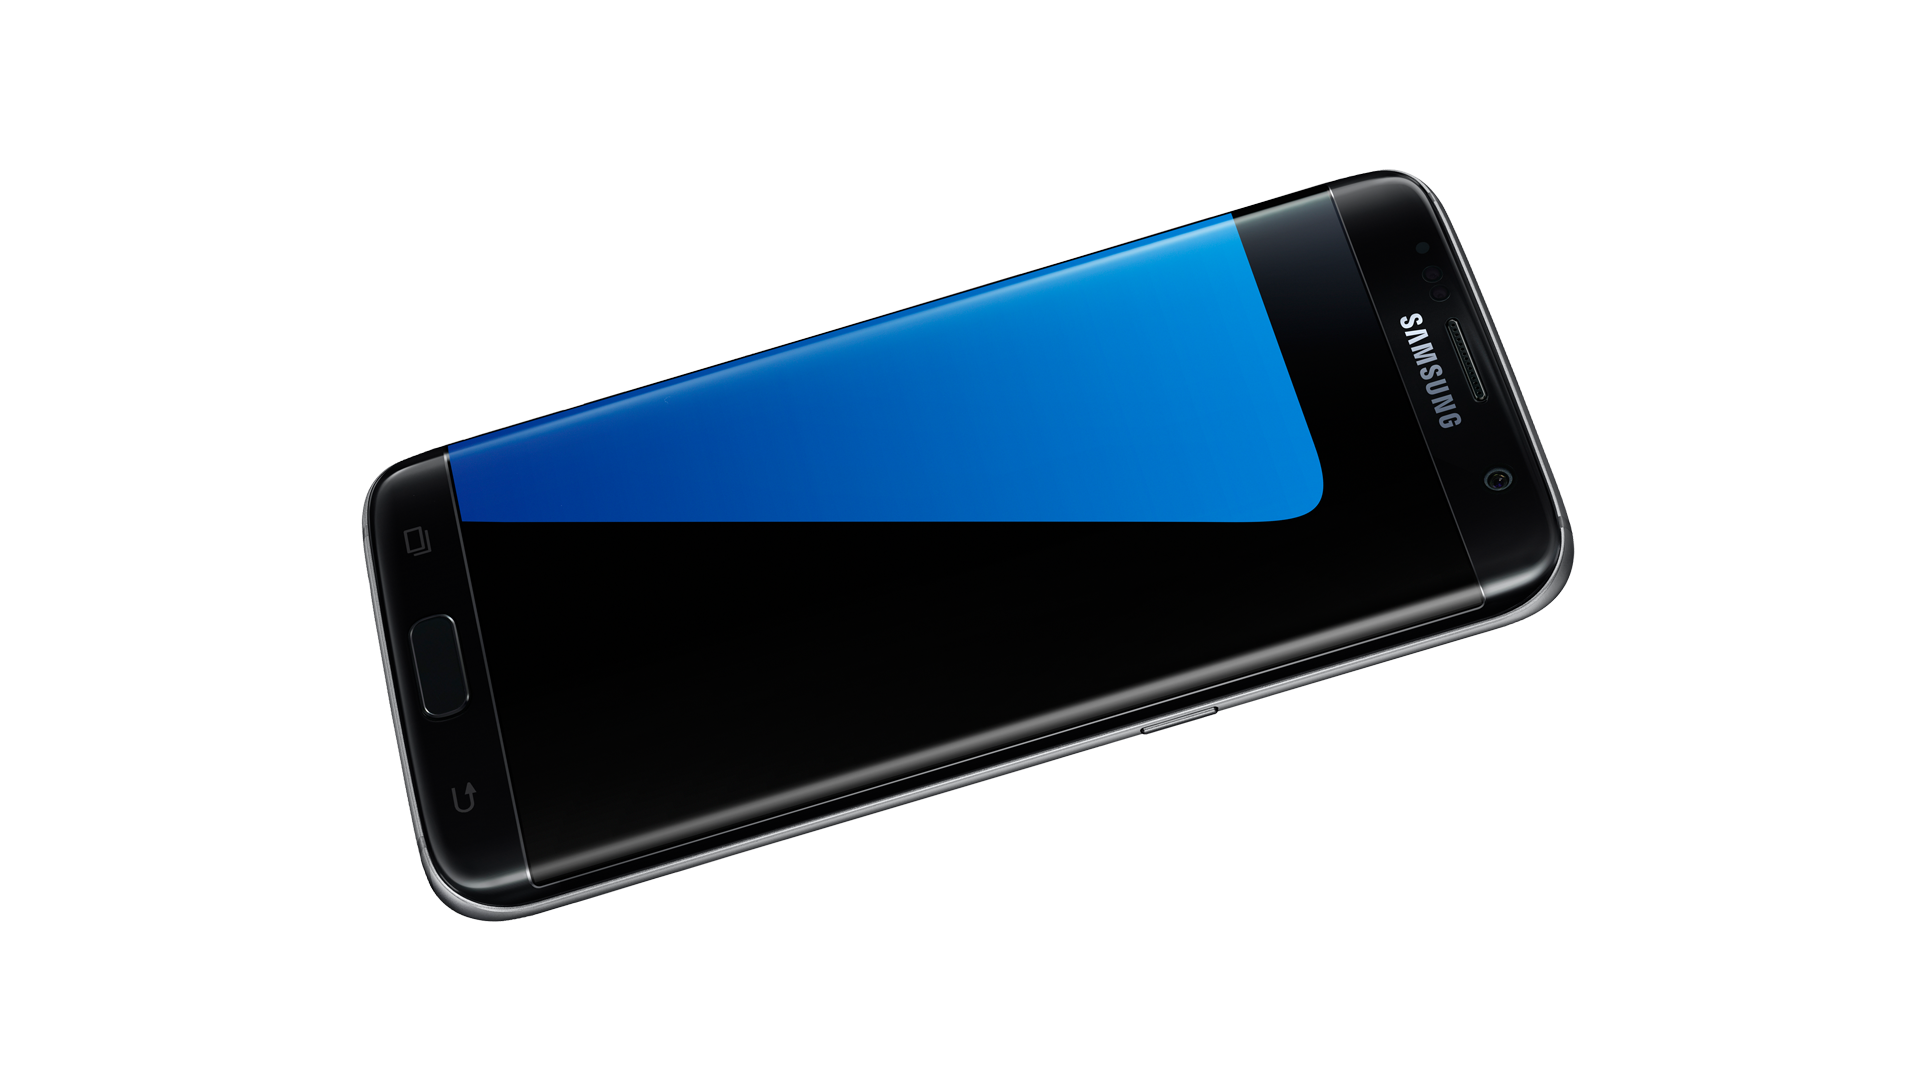 Galaxy S7 edge - Samsung Accessories Samsung Galaxy S7 and S7 edge - The Official Samsung Galaxy S7 S7 Edge Proximus